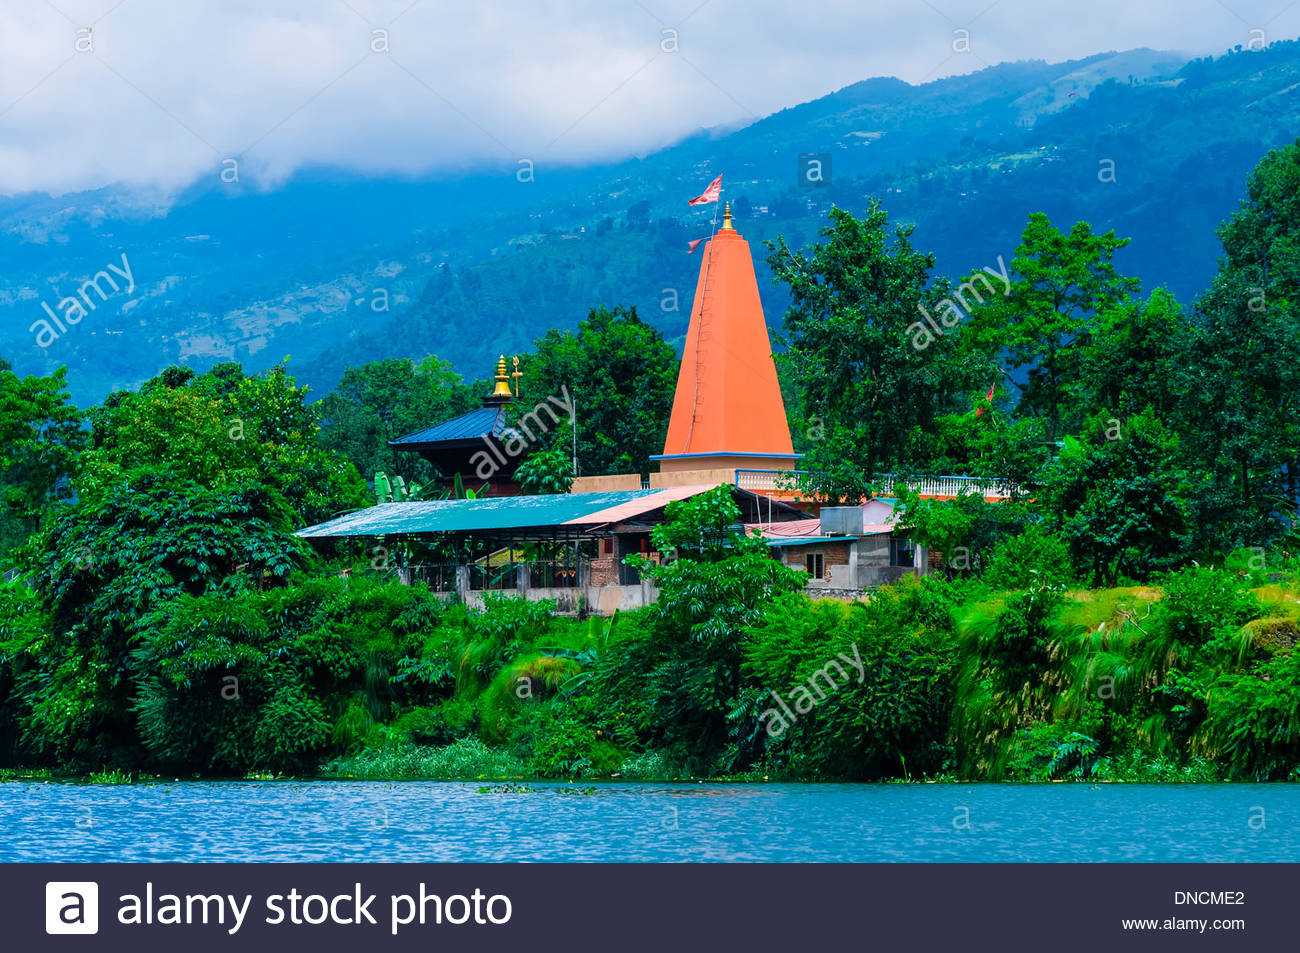 Along Phewa Lake, Pokhara, Nepal. - Stock Image